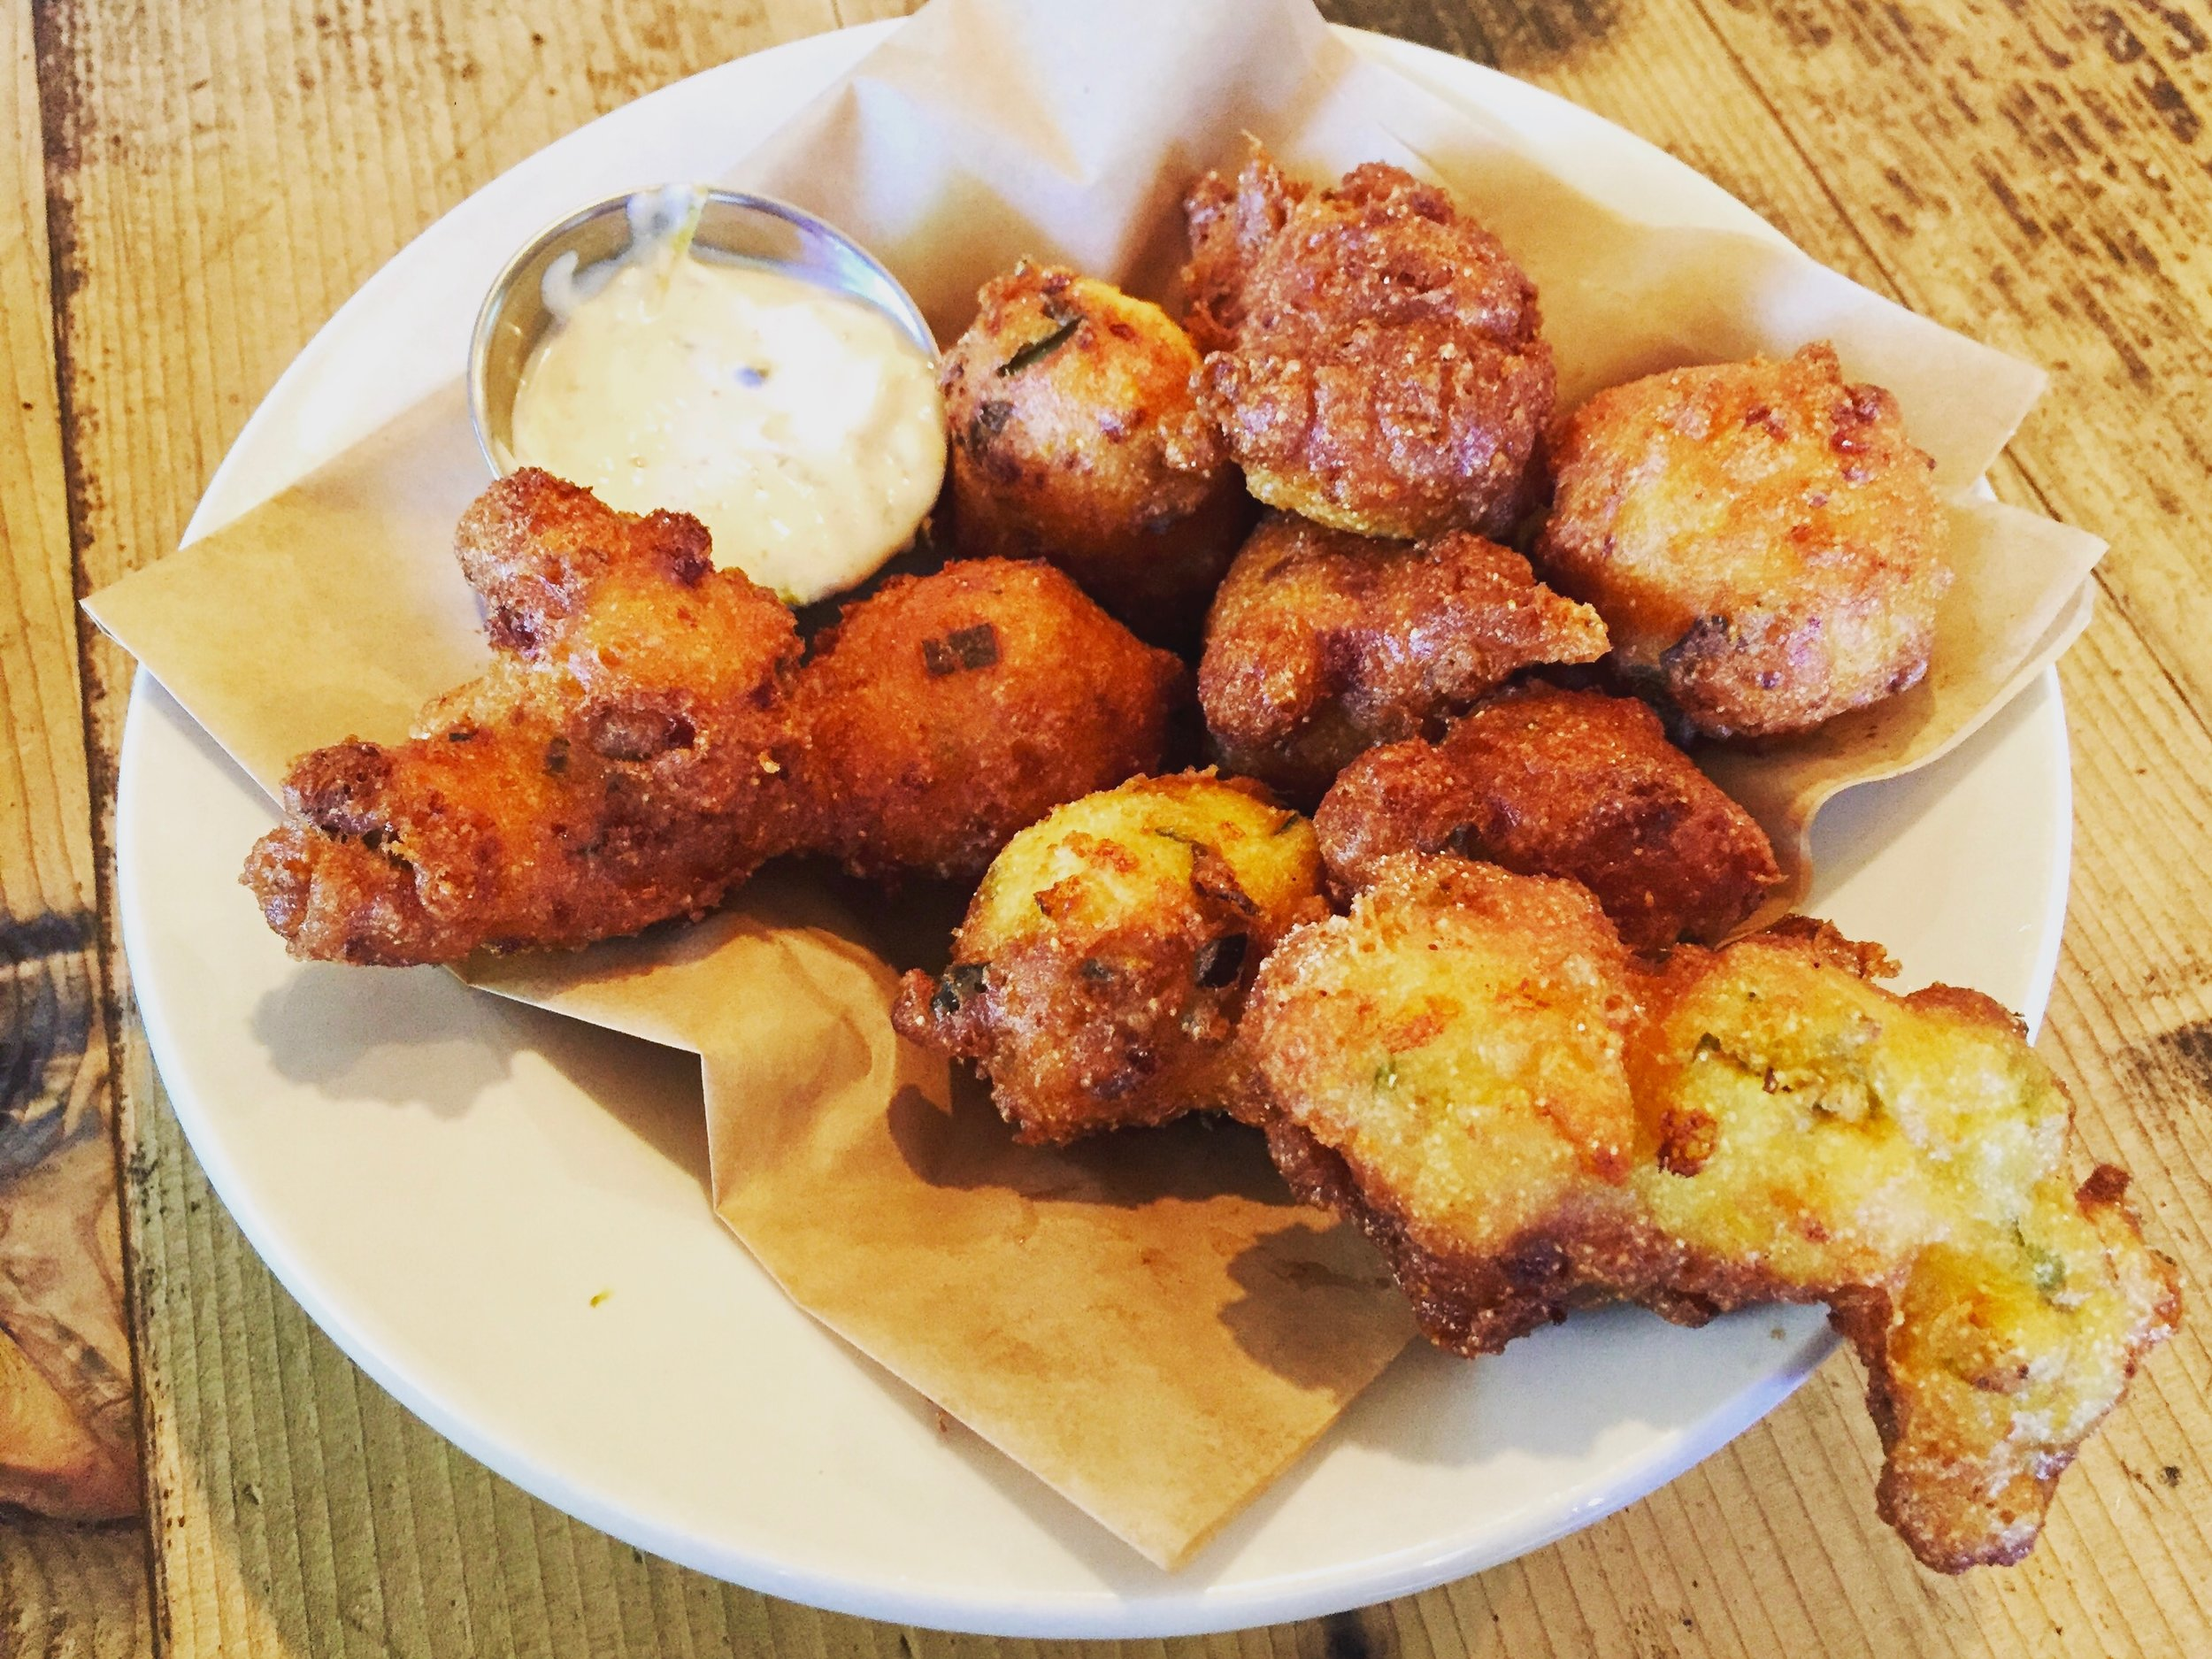 And if you're feeling really greedy, you can also start with the hush puppies.